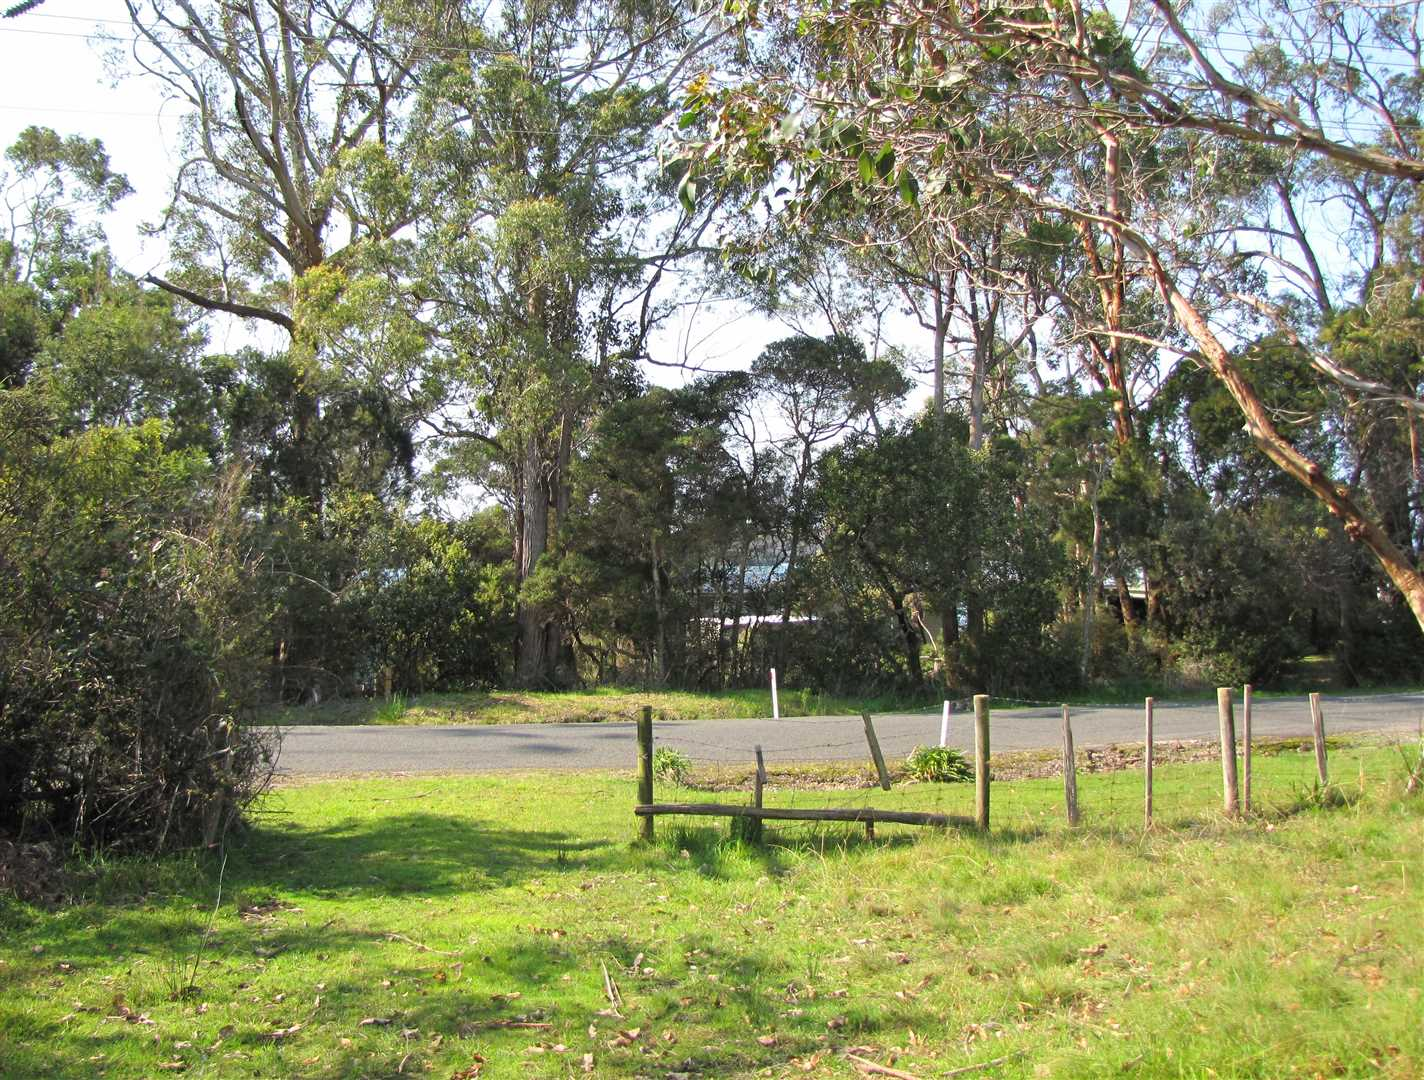 Considering Building ? - Affordable Lot of Approx. 837Sqm